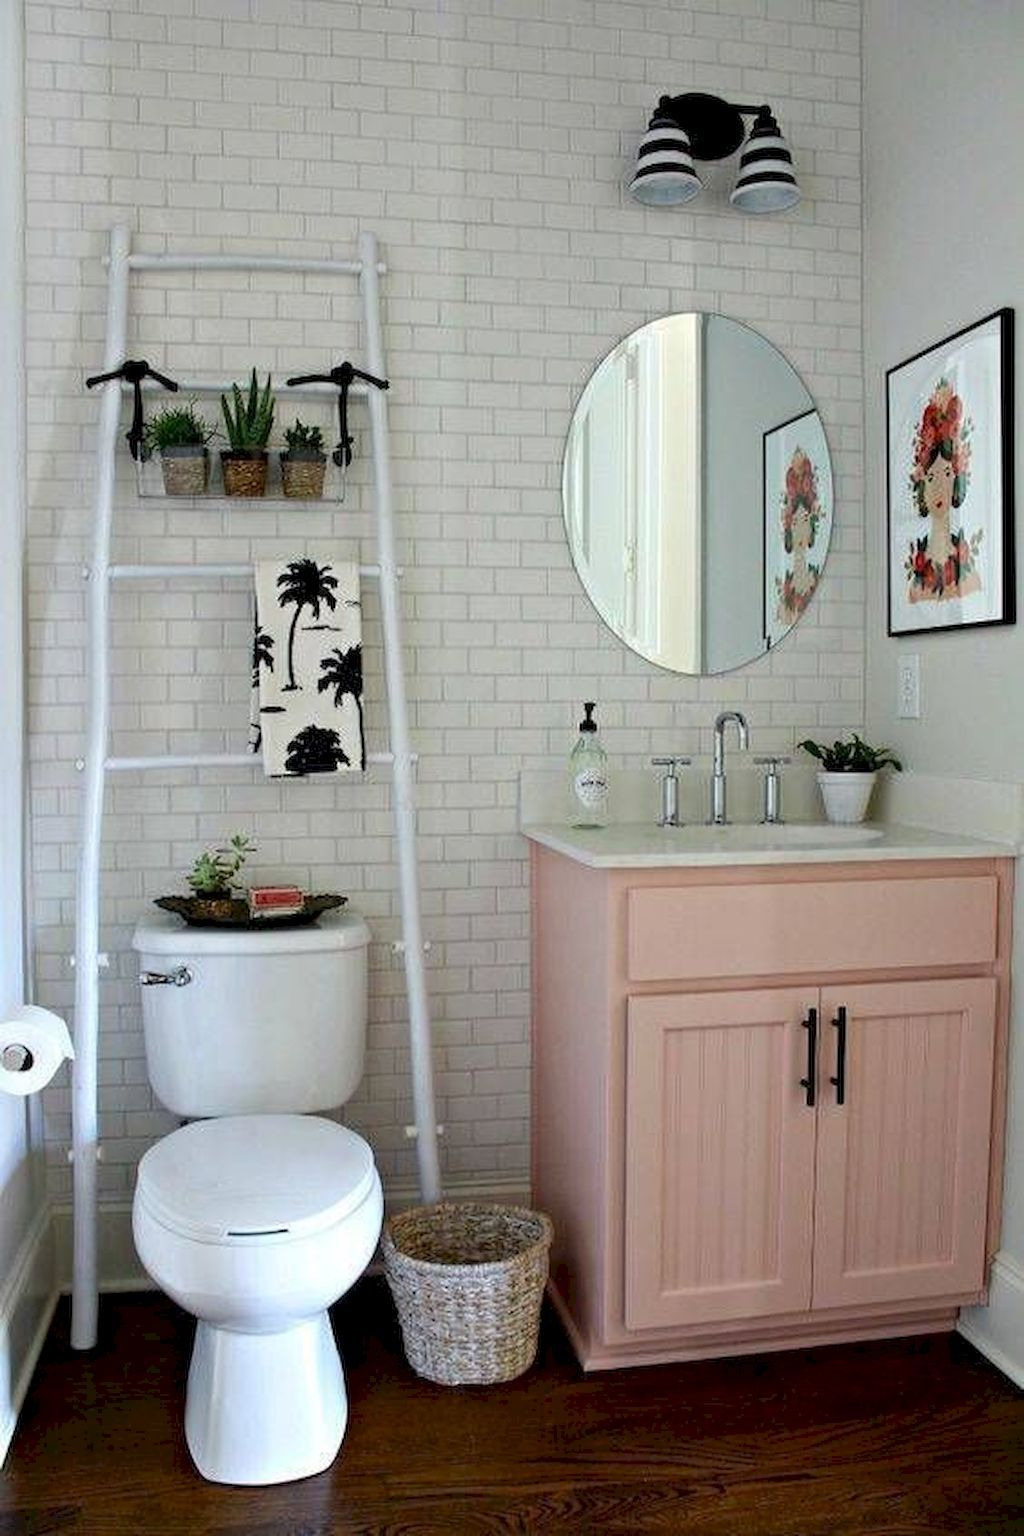 Cute Bathroom Decorations Inspirational Pin by Alexandra Booth On House Bathroom Space